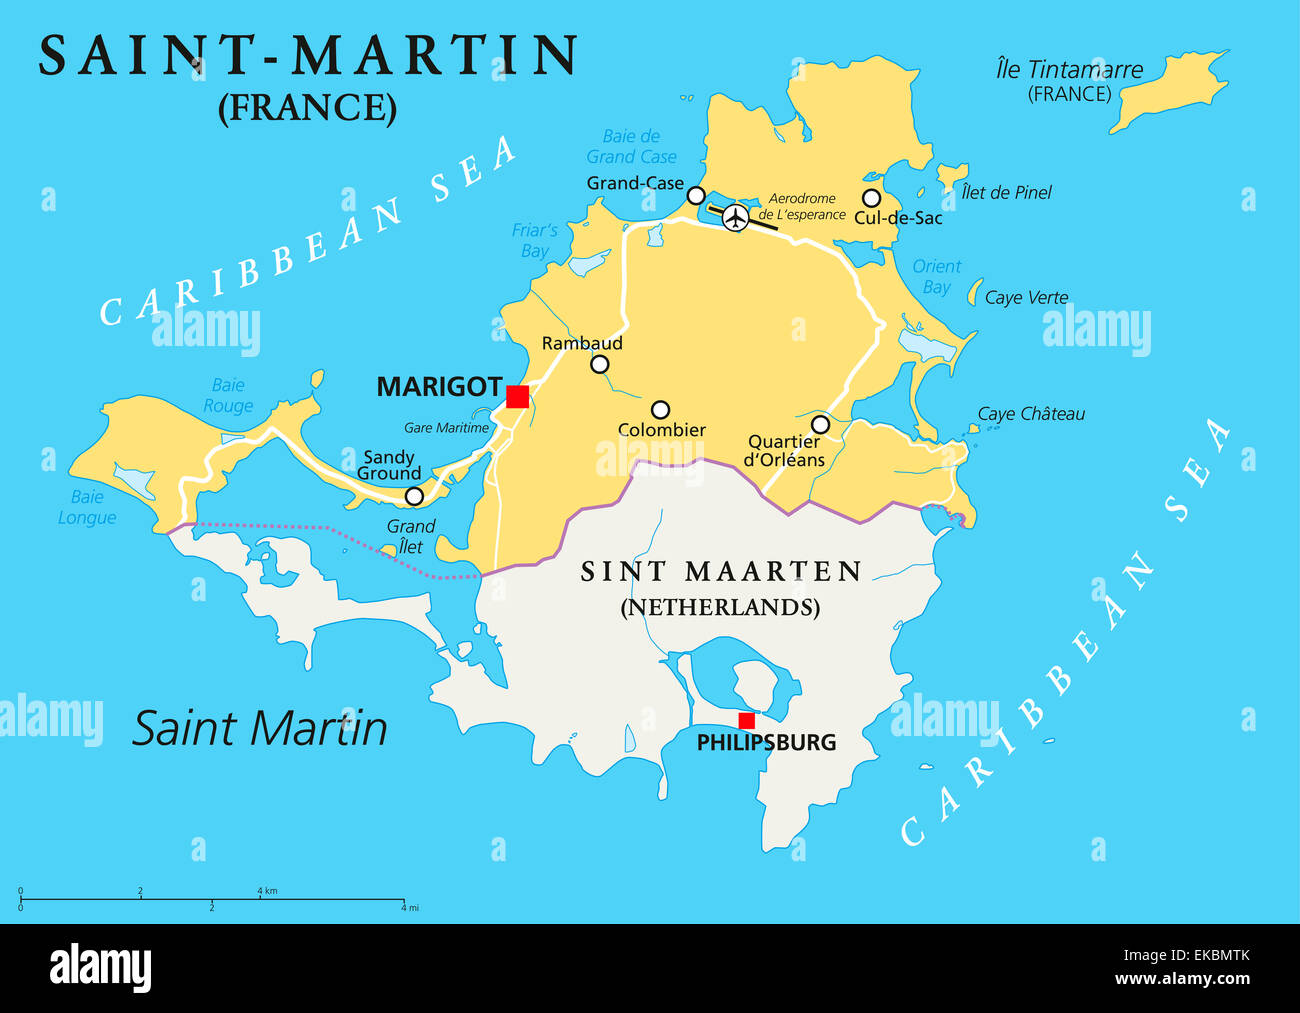 Saint-Martin Country Political Map - Stock Image